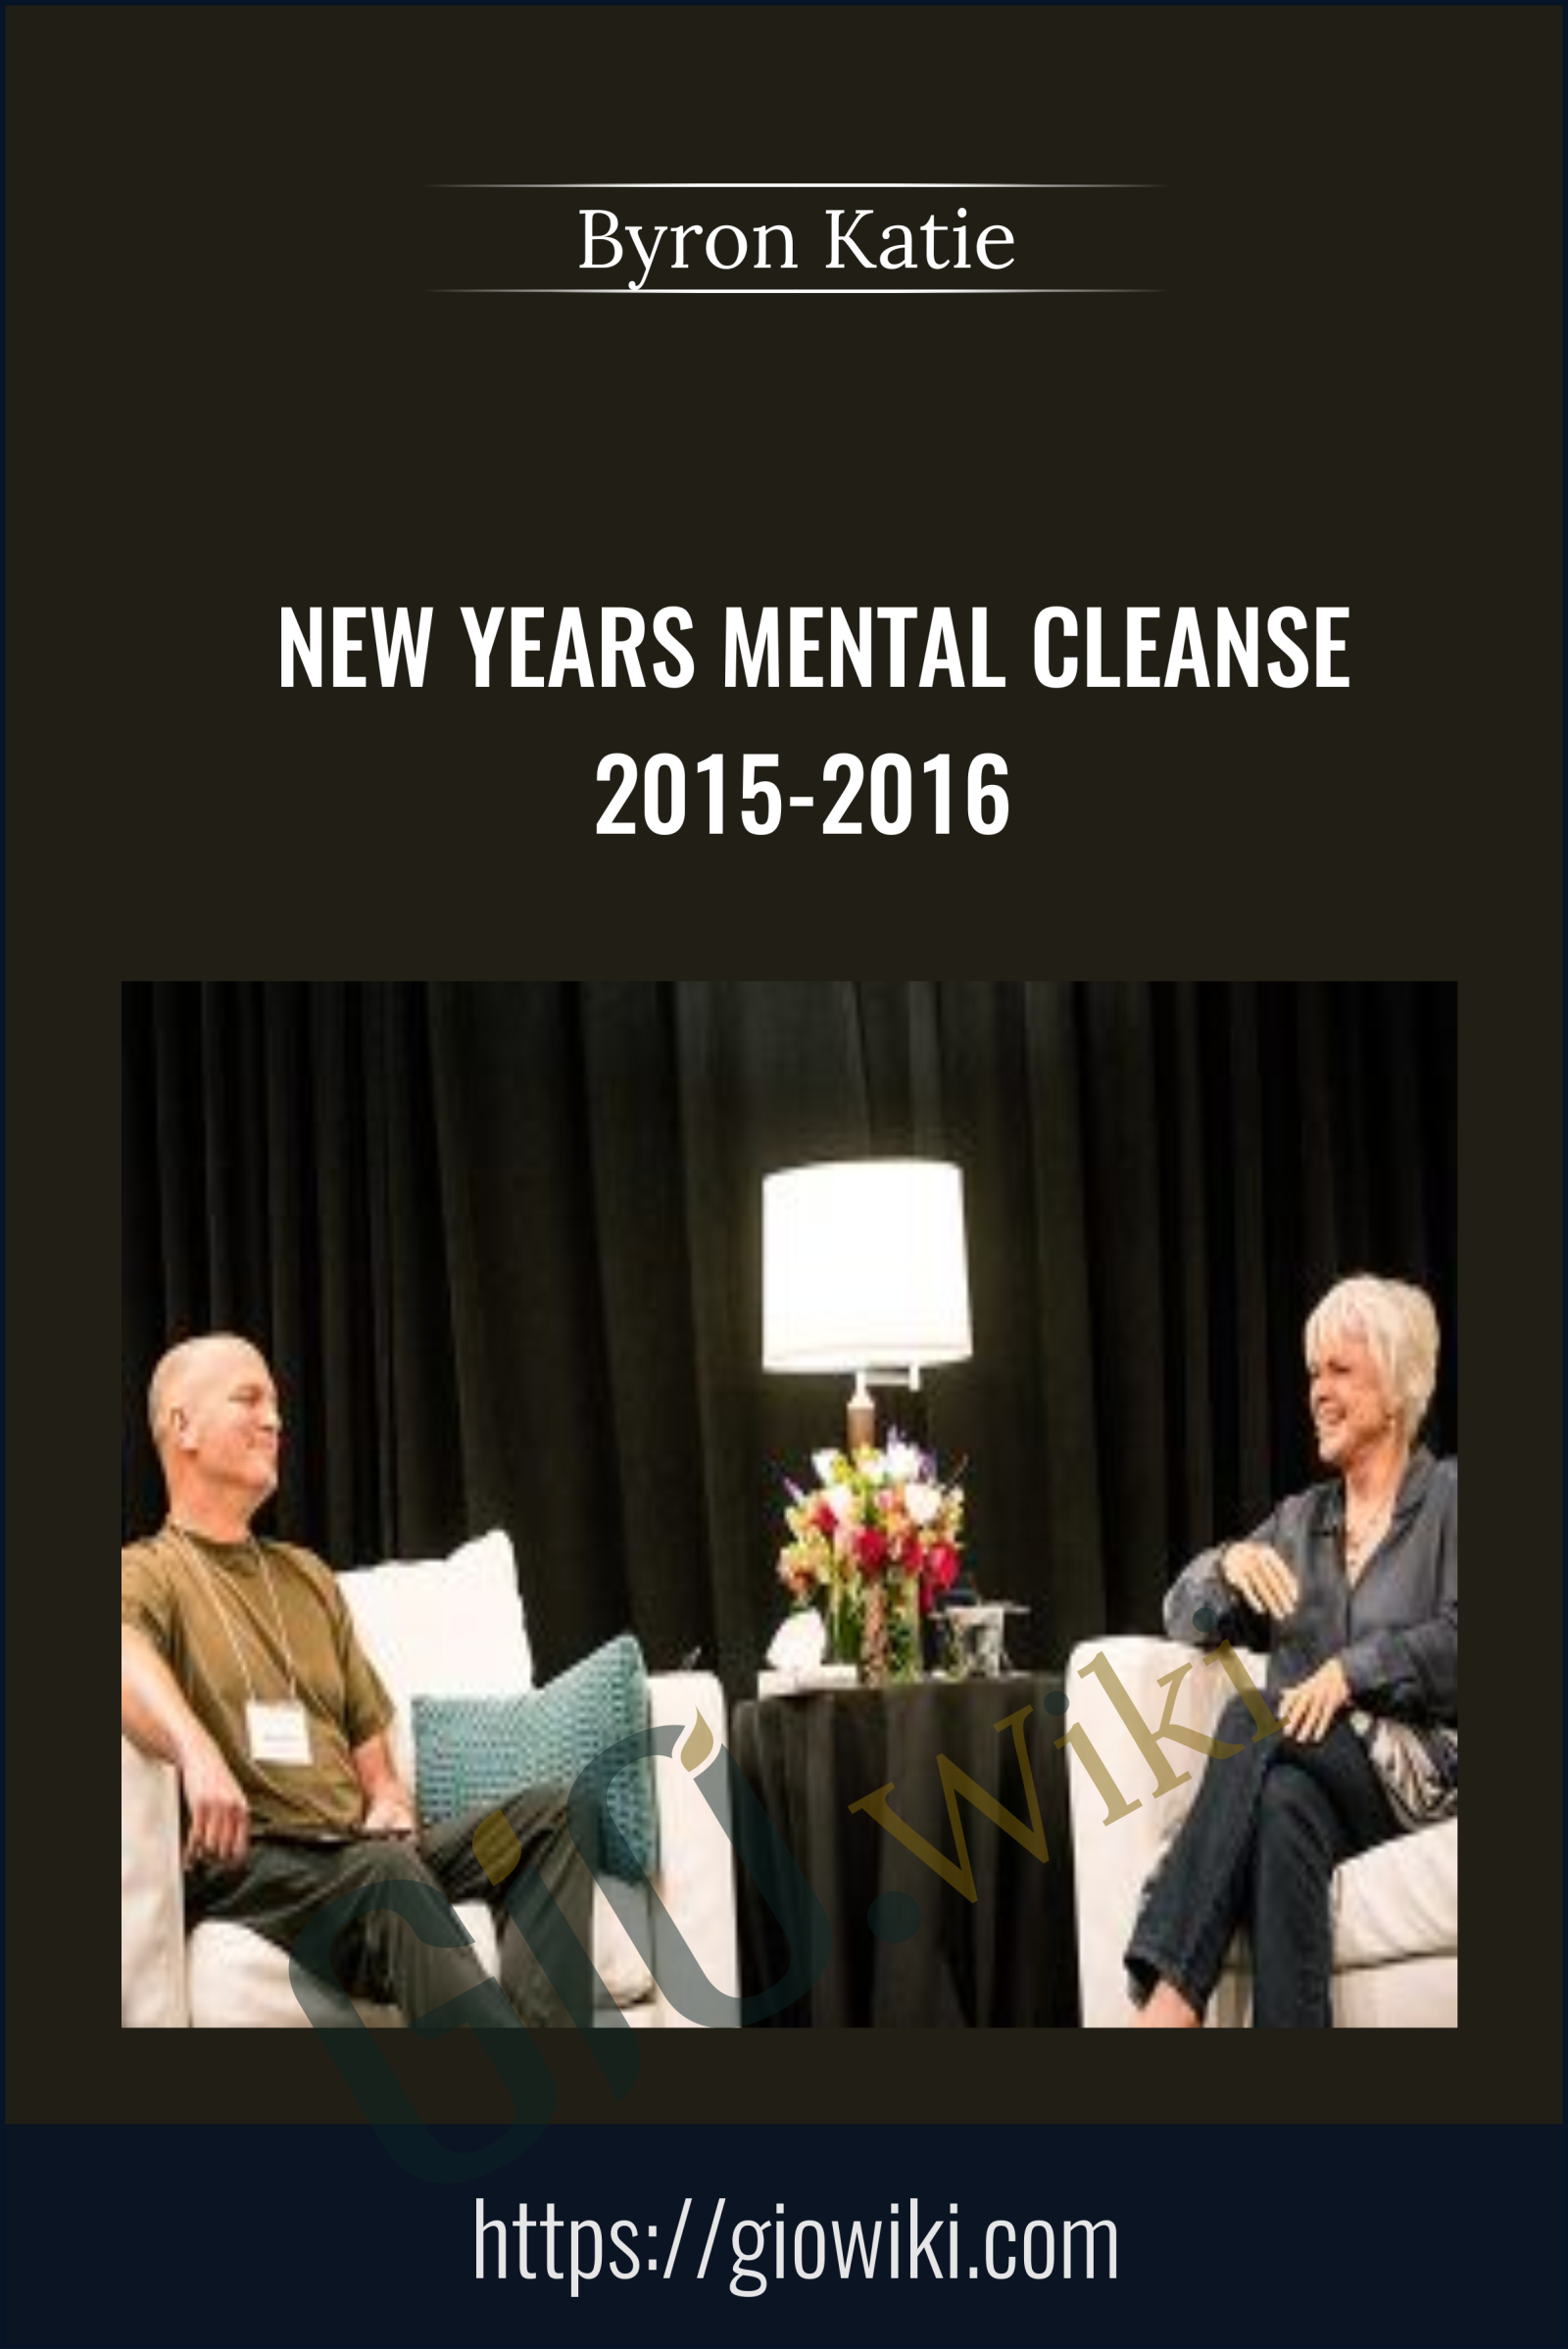 New Years Mental Cleanse 2015-2016 - Byron Katie